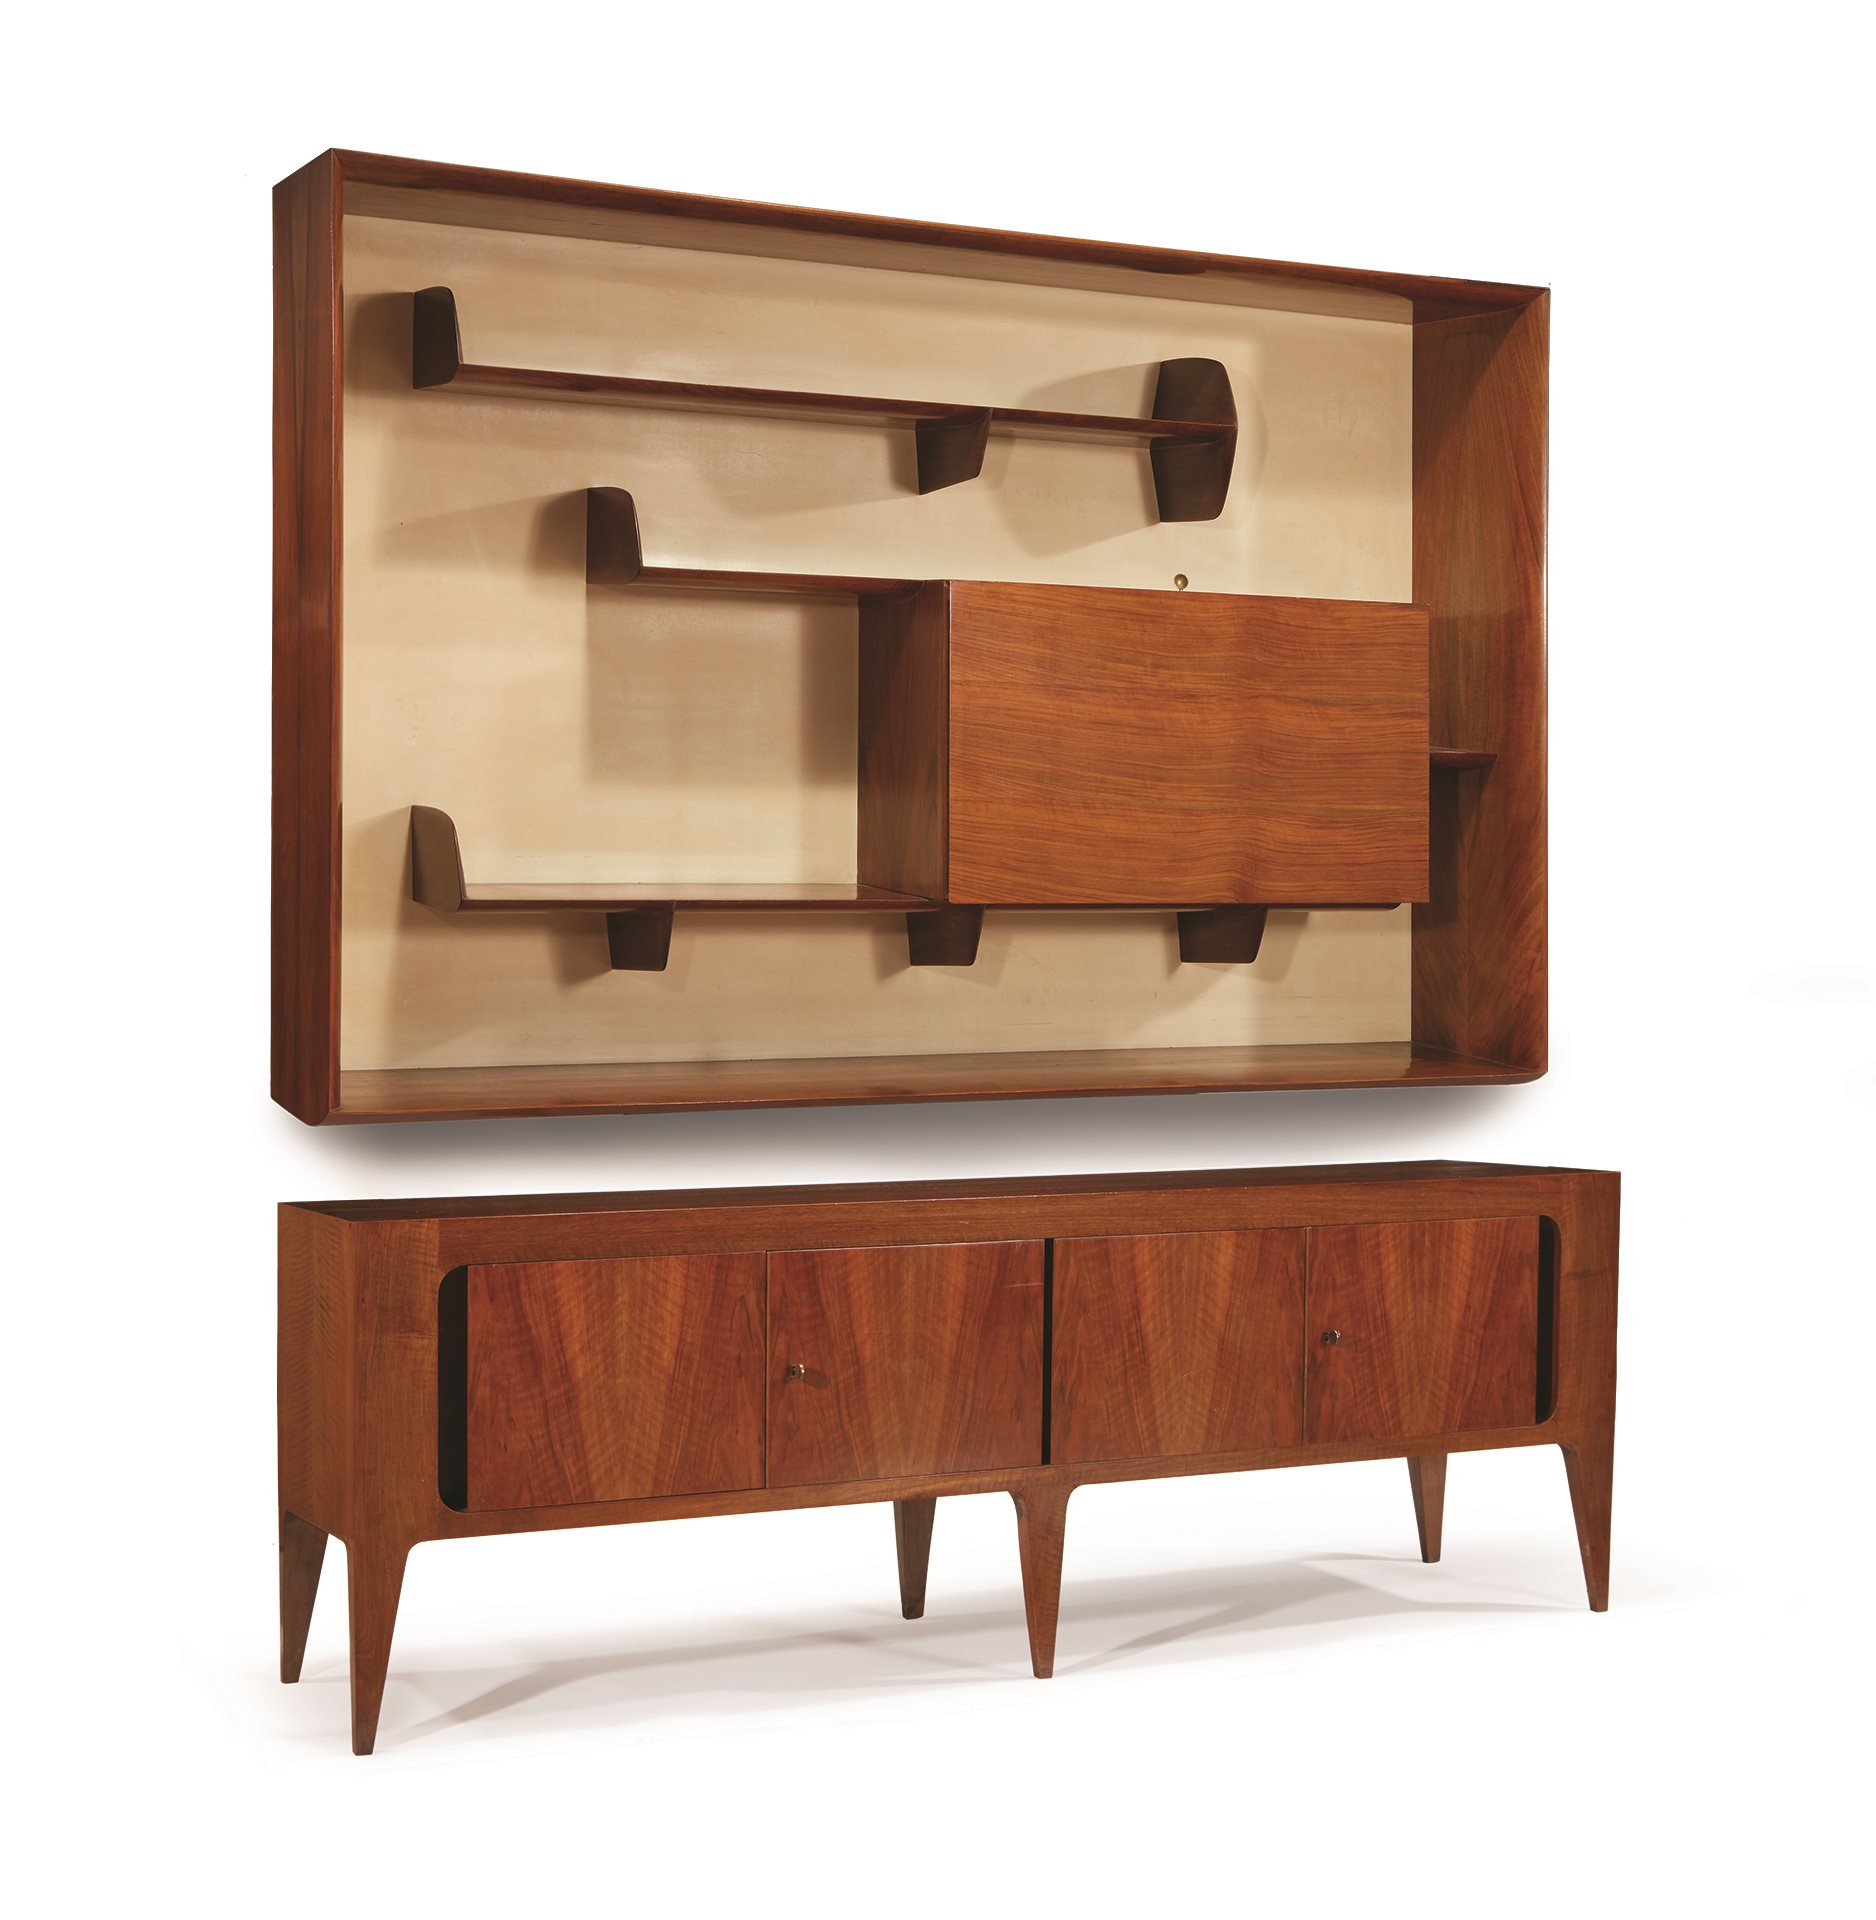 Gio Ponti (Italian, 1891-1979)  A Wall-Mounted Bookcase and Sideboard Cabinet, Singer & Sons, Italy, circa 1951,  $20,000-30,000